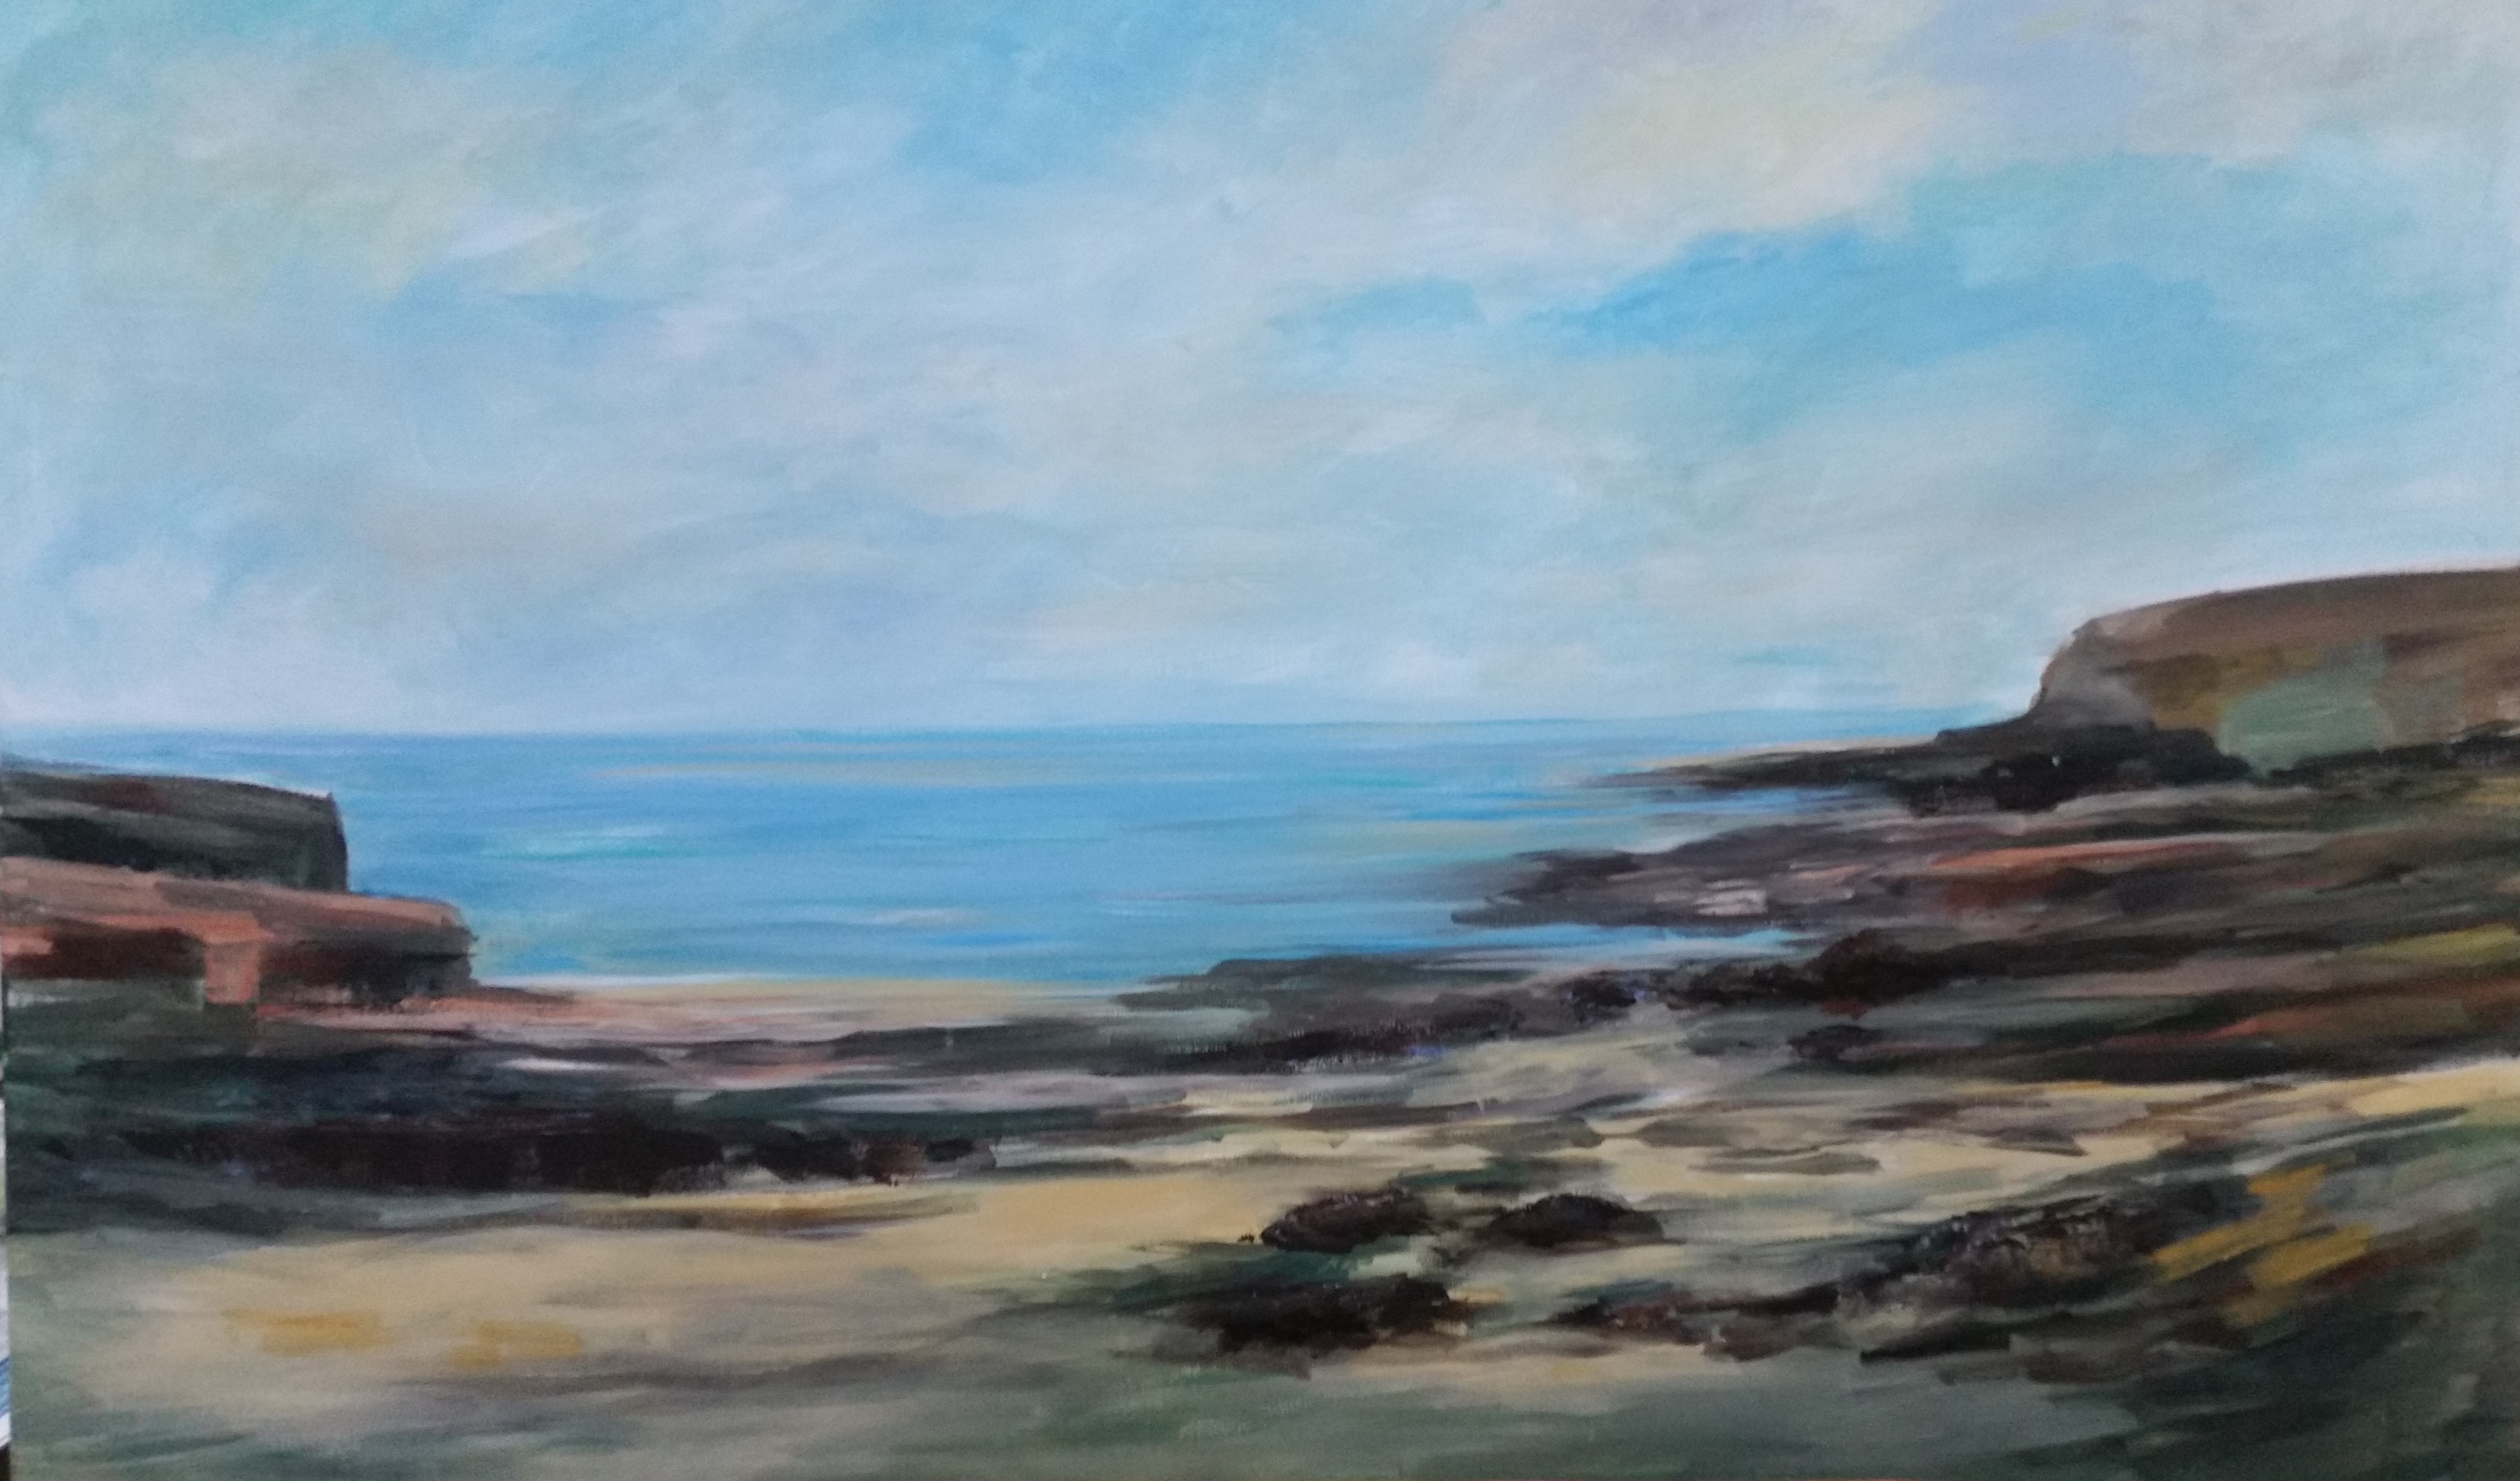 Seascape artwork by ROMAINE KAUFMAN - art listed for sale on Artplode